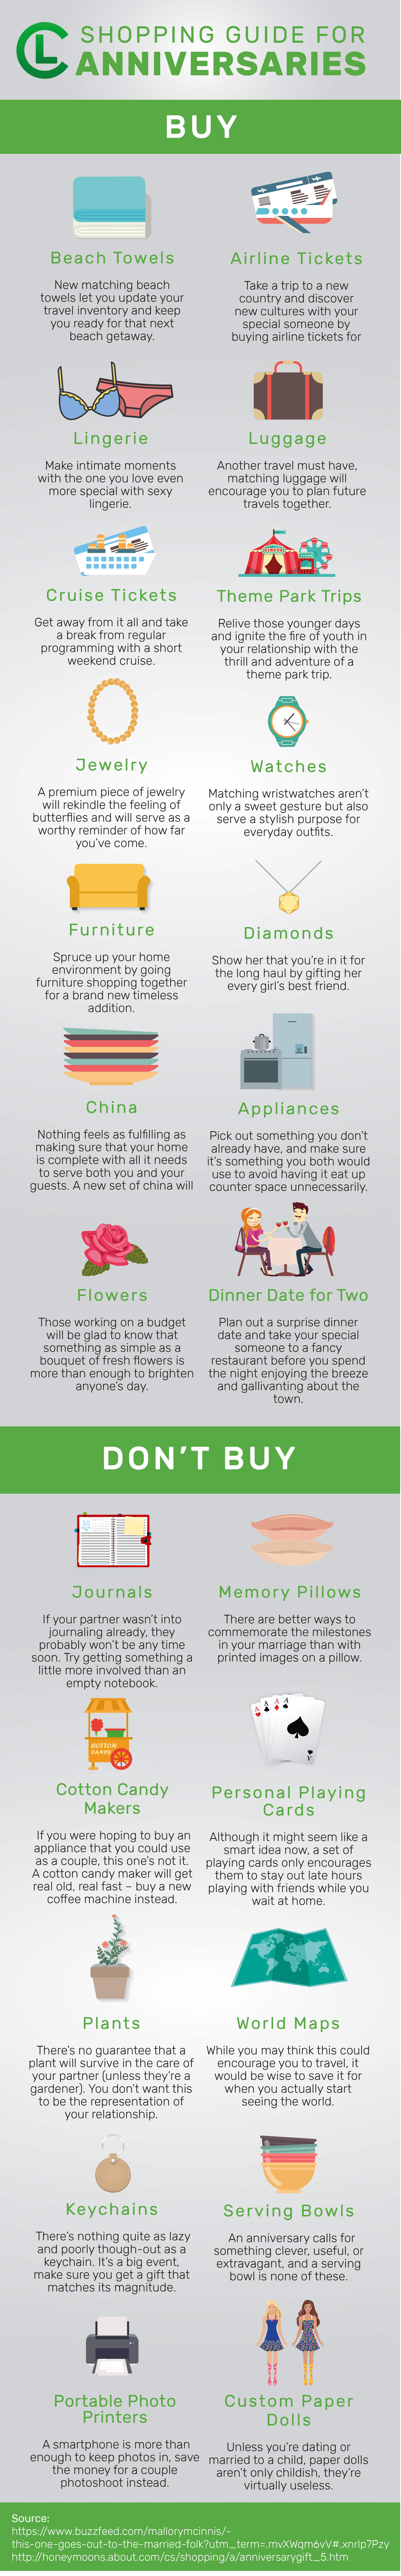 Guide For Anniversaries Shopping Infographic